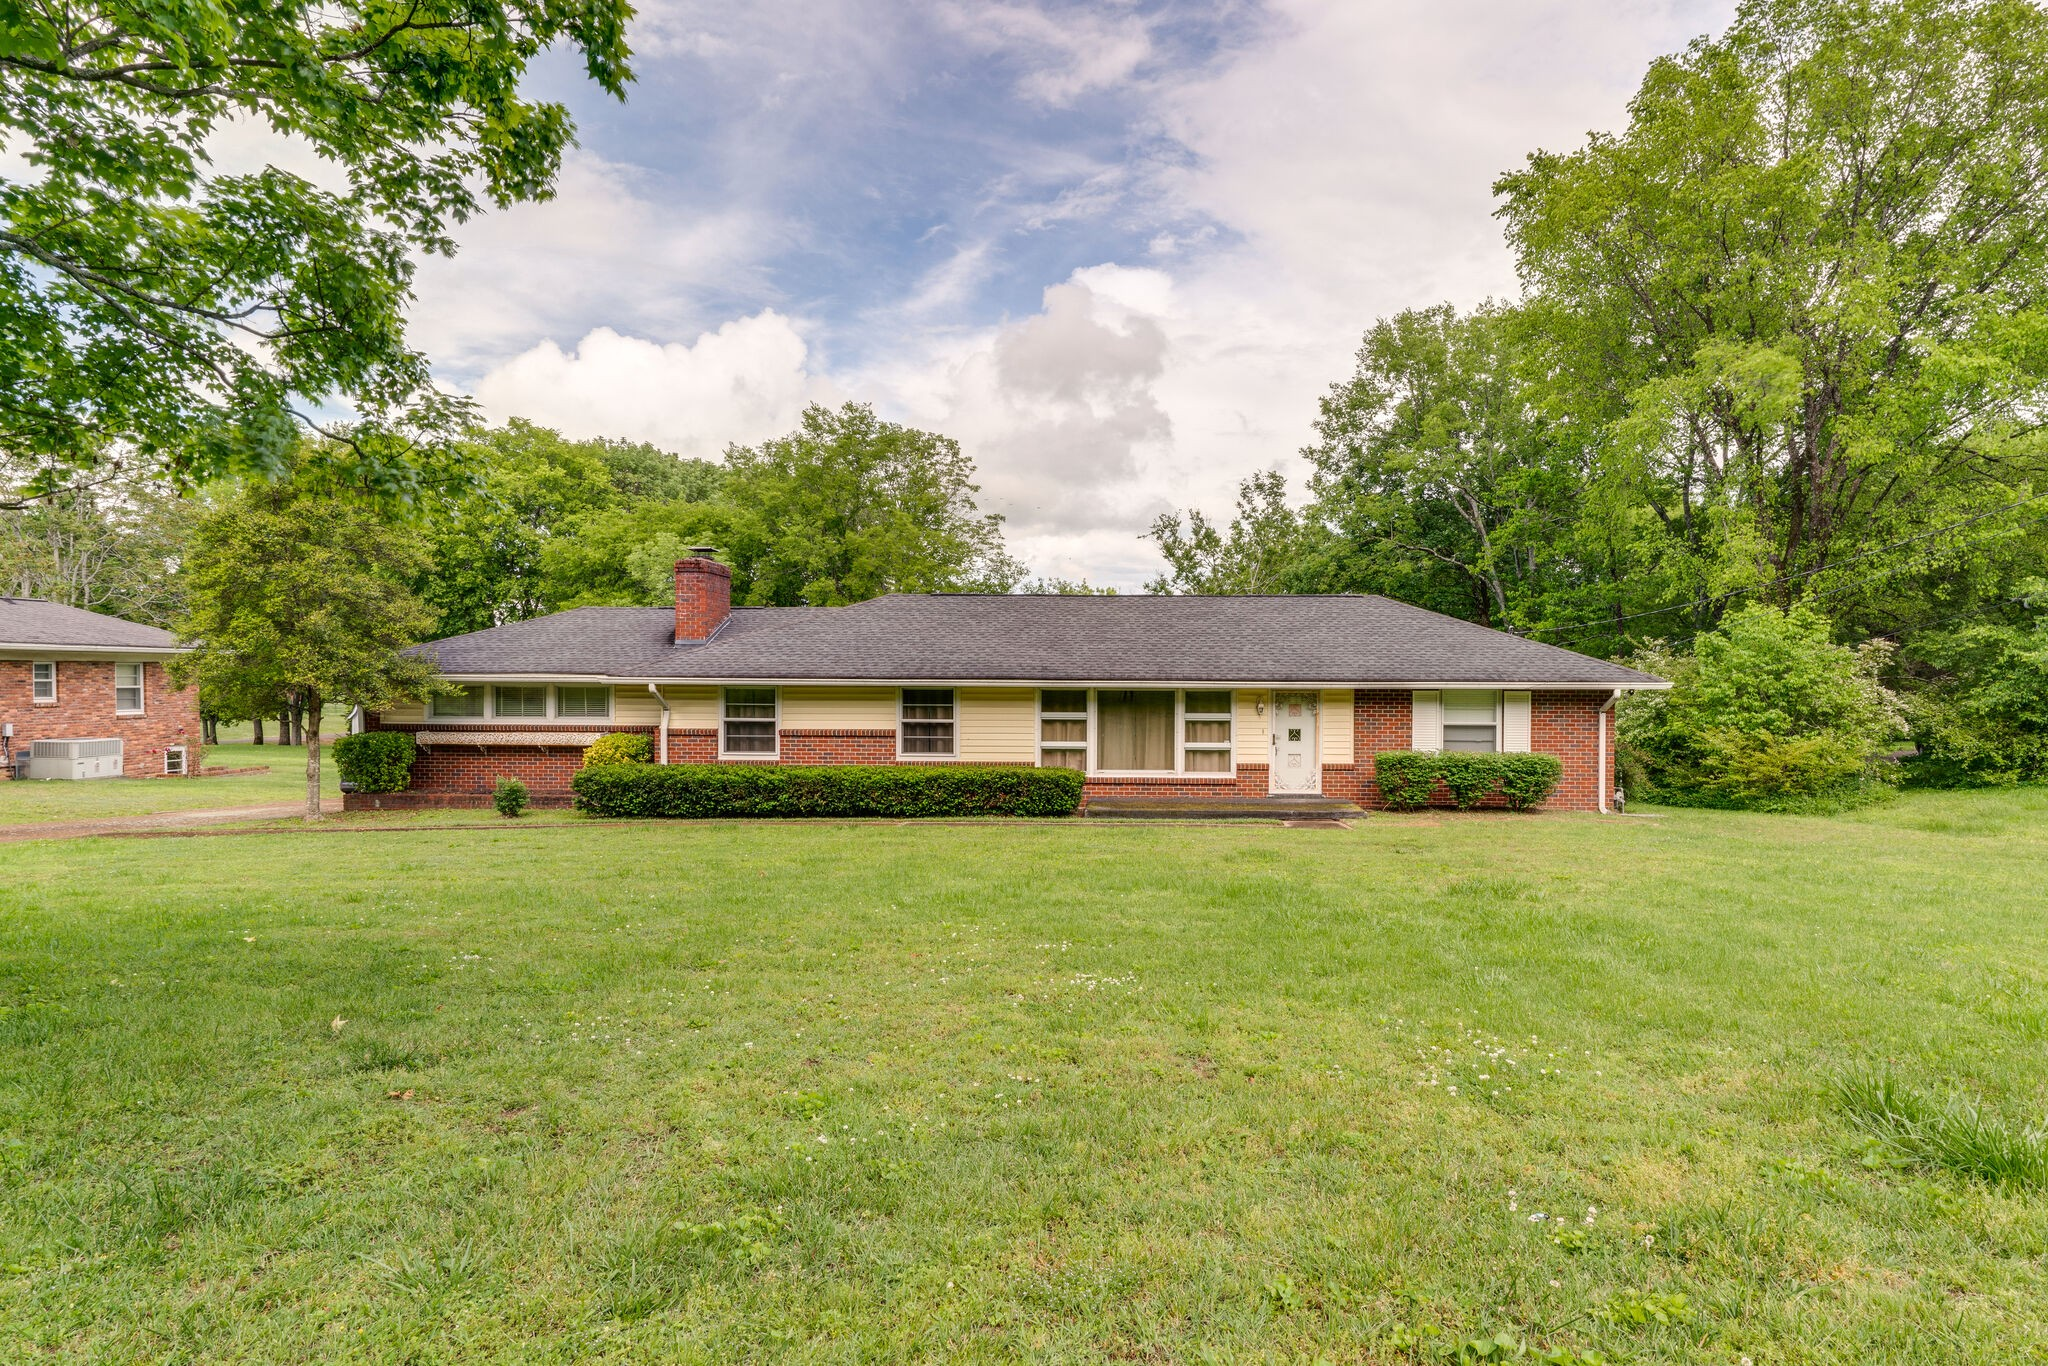 Brick immaculate home on large almost acre level lot!  2 car attached garage, storage building, original hardwood floors, updated bath & kitchen! Great Location!